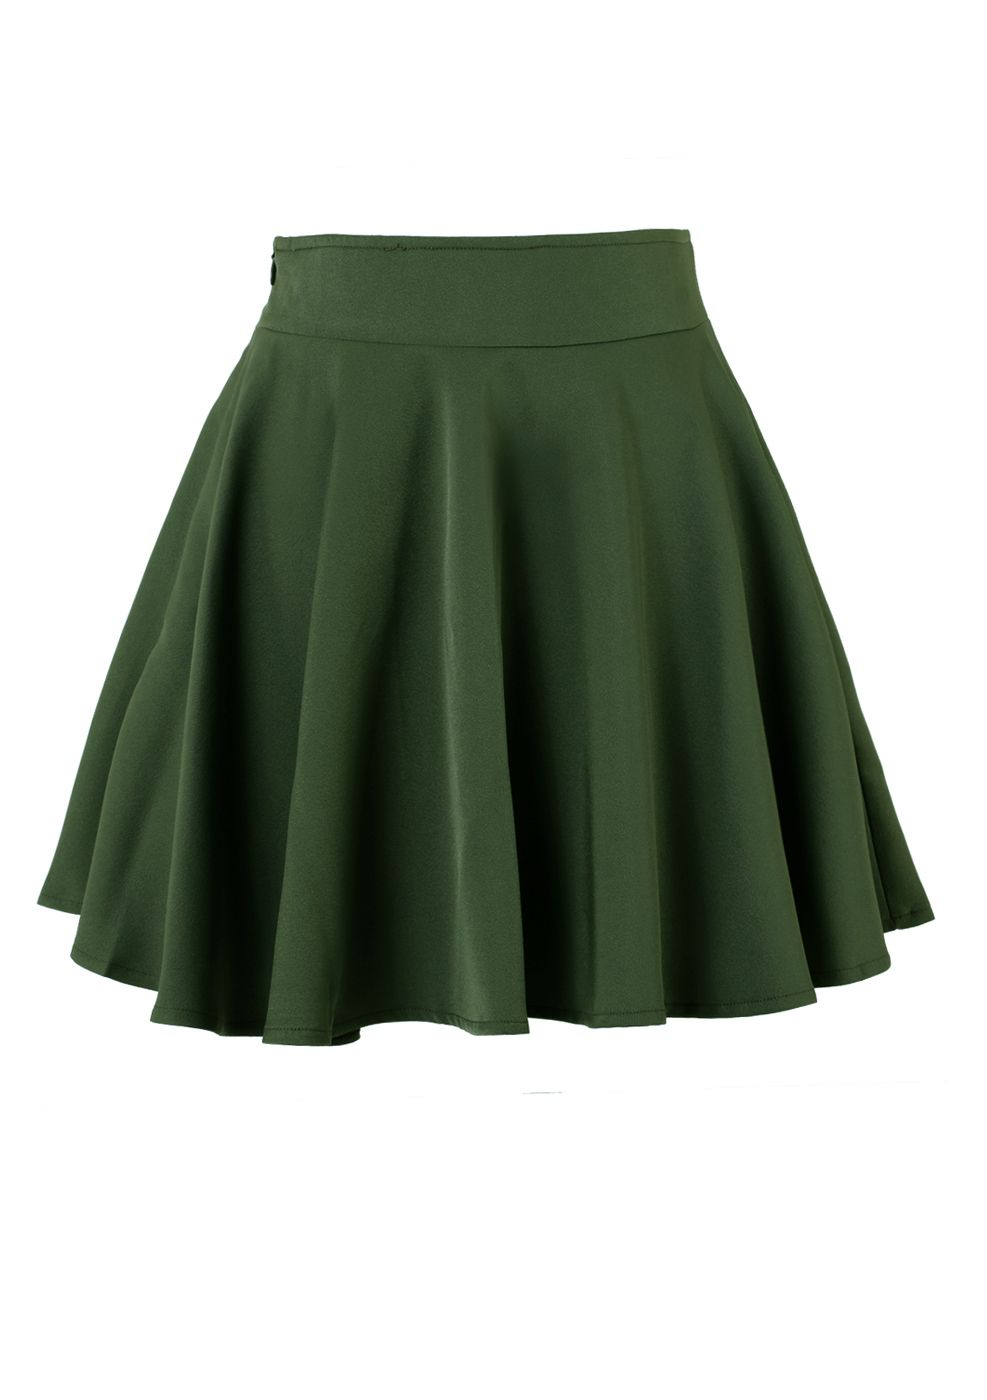 0f48e7a3104 Dark green Skater Skirt